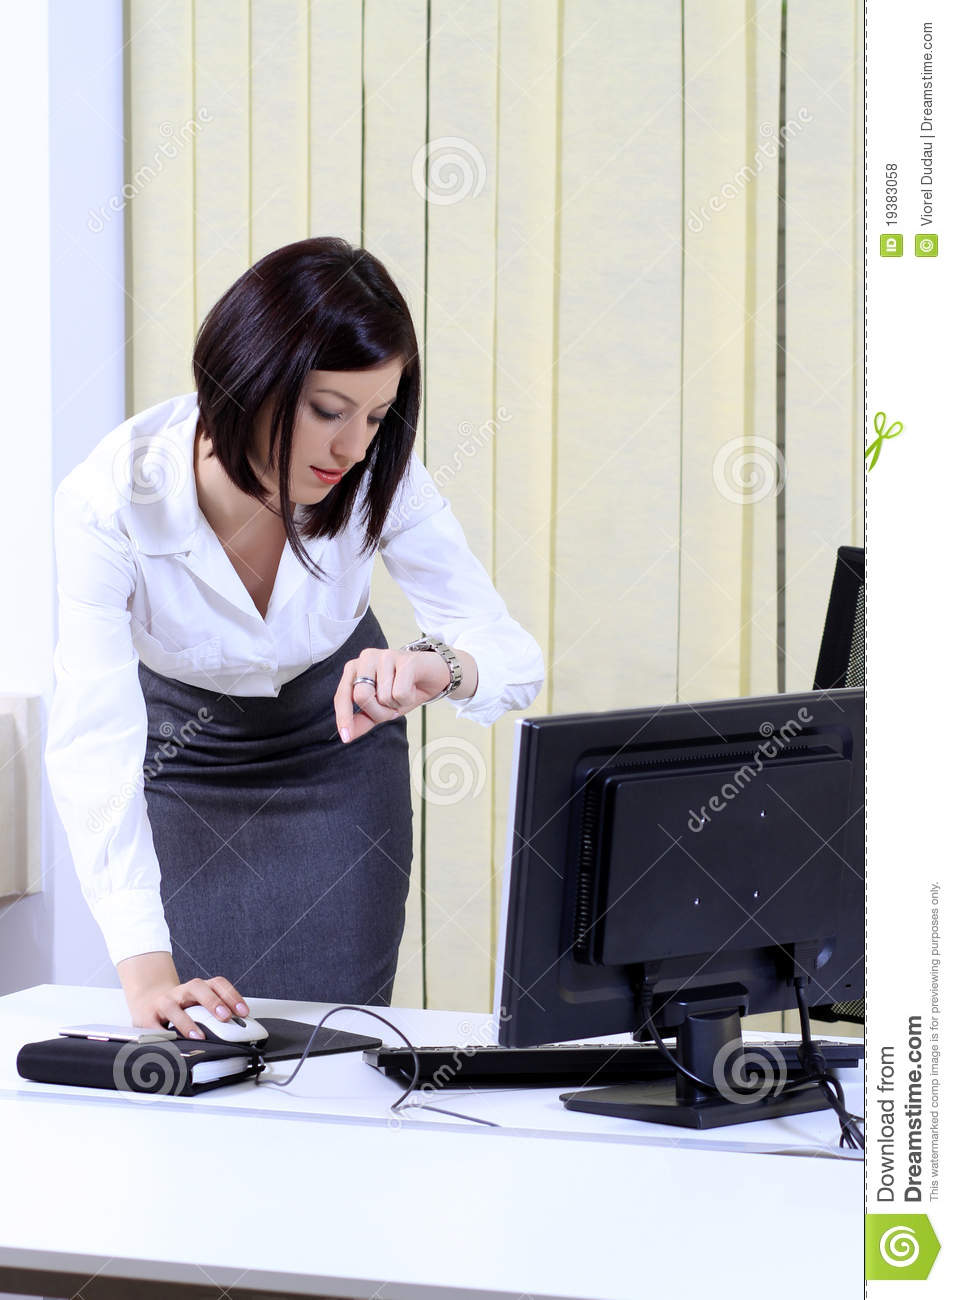 Office Woman In A Hurry Royalty Free Stock Photos  Image